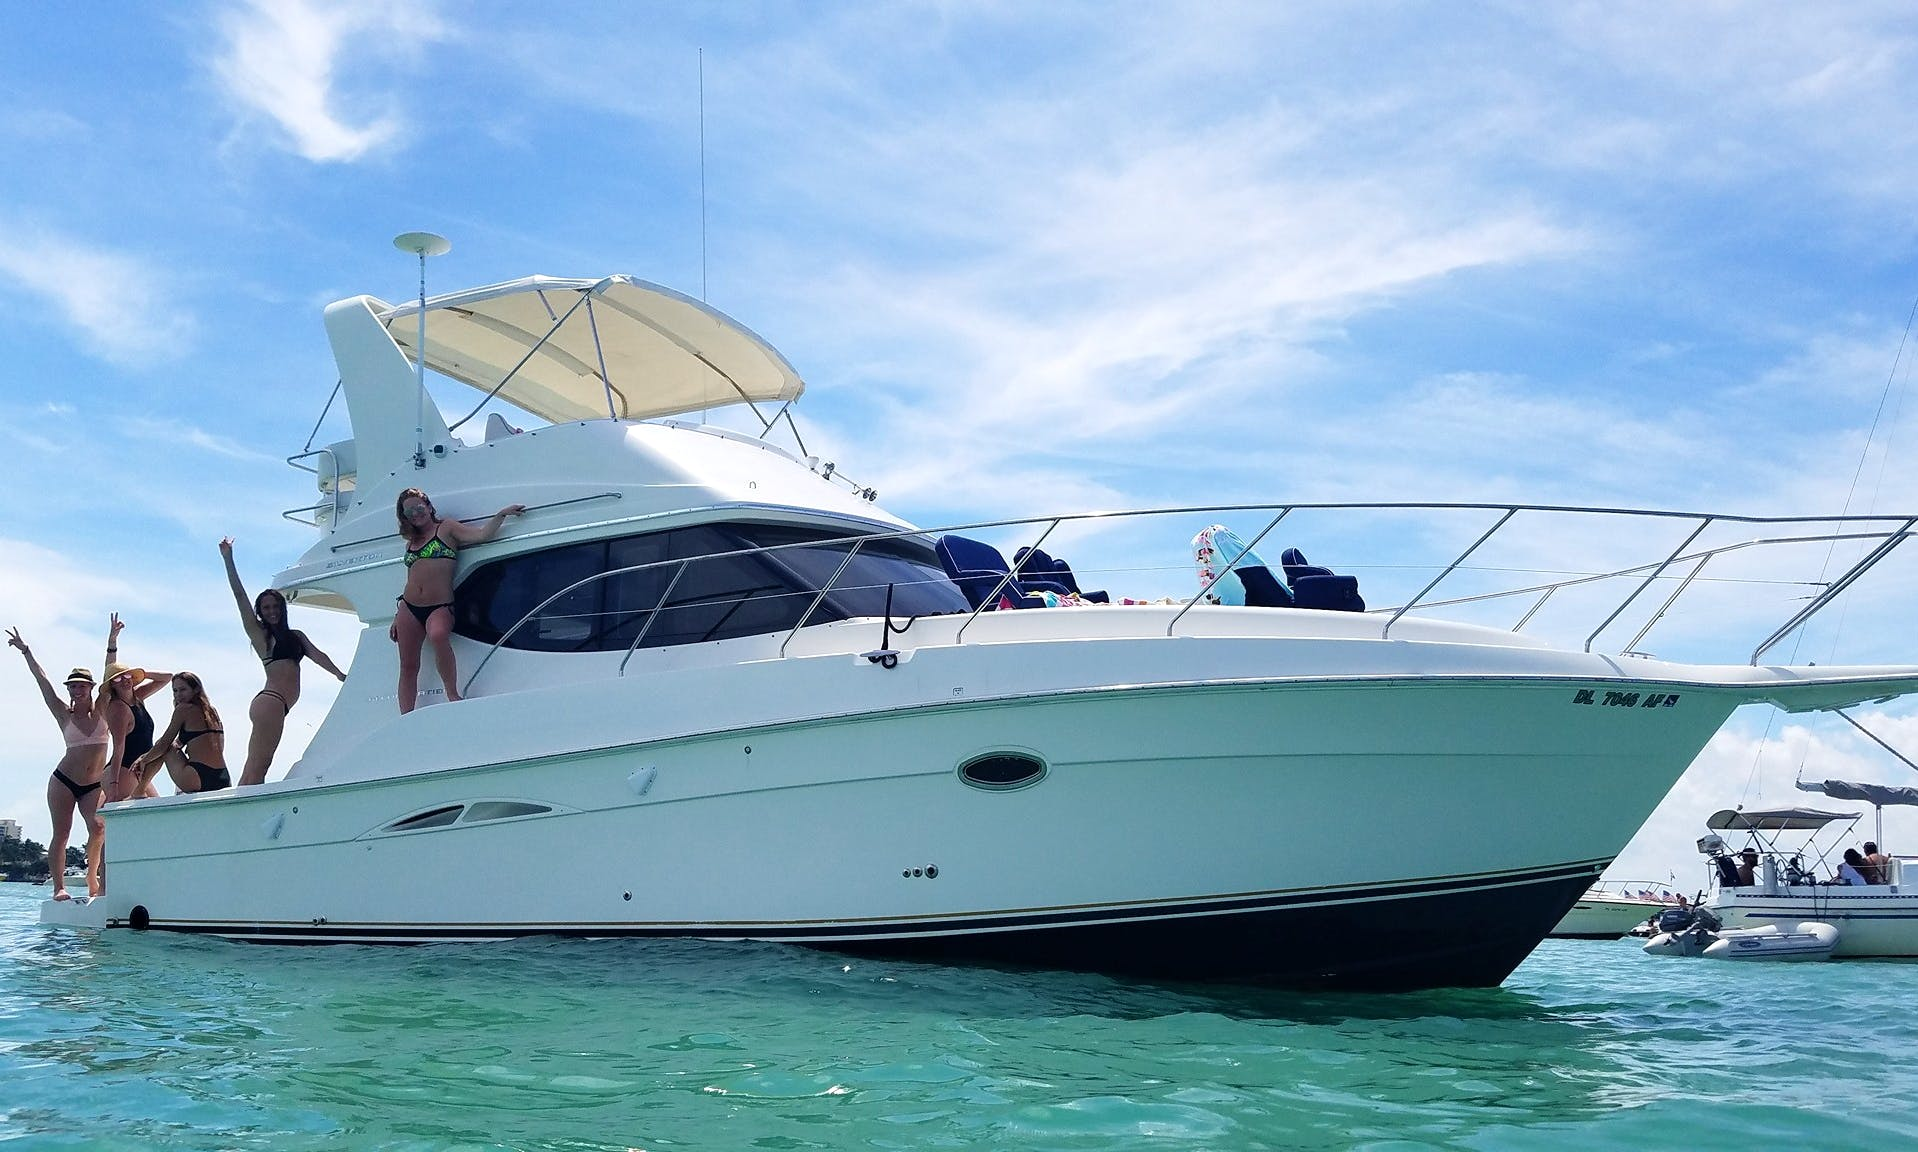 Amazing & Immaculate 40' Yacht rental in Fort Lauderdale, Boca, or Miami